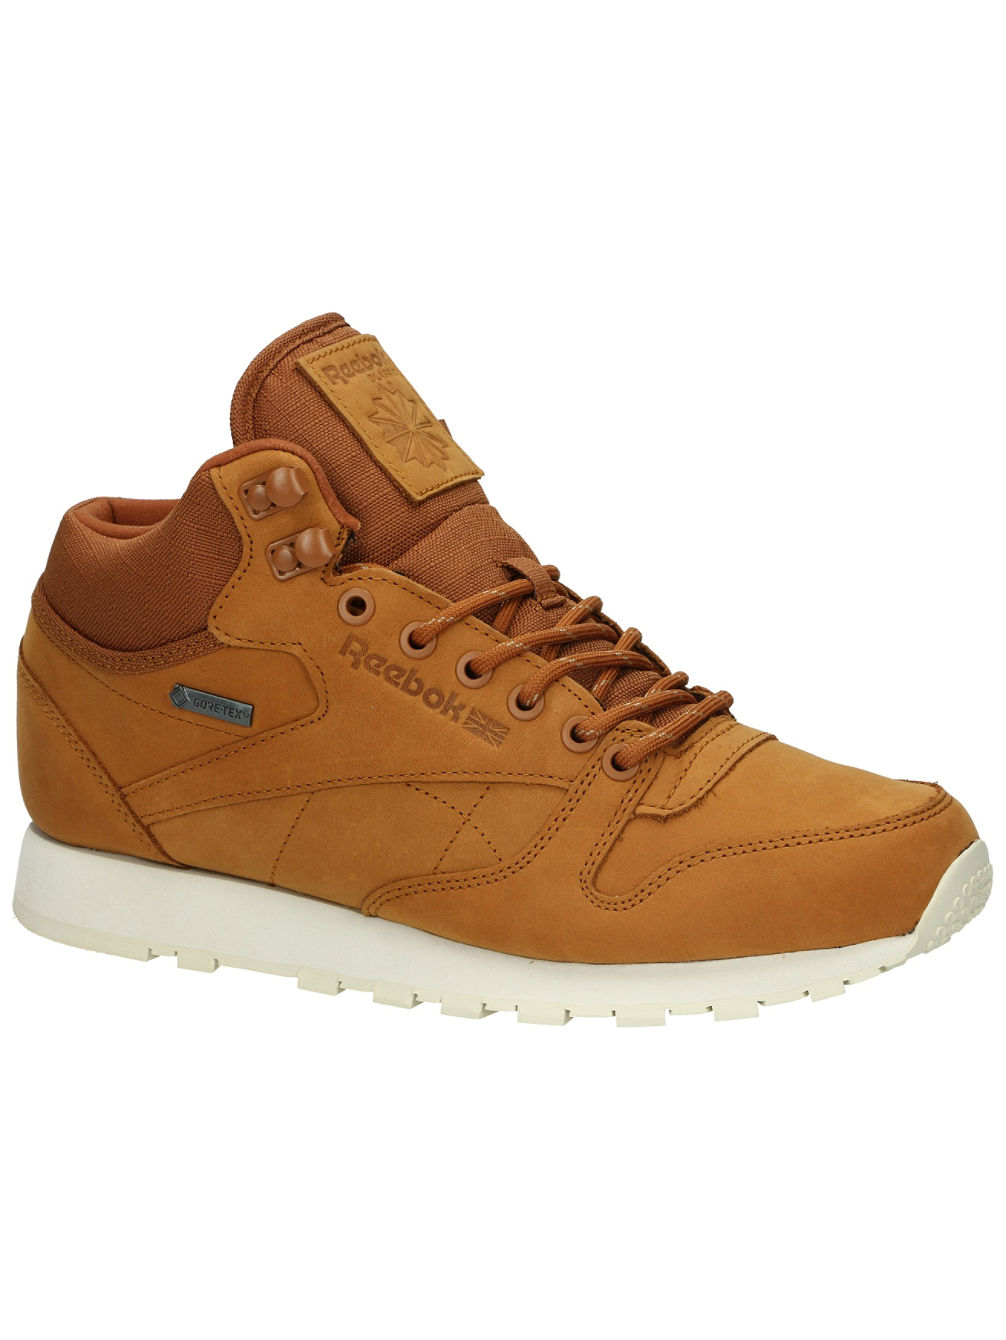 ead27520bd1 Buy Reebok Classic Leather Mid Gore-Tex Sneakers online at Blue Tomato